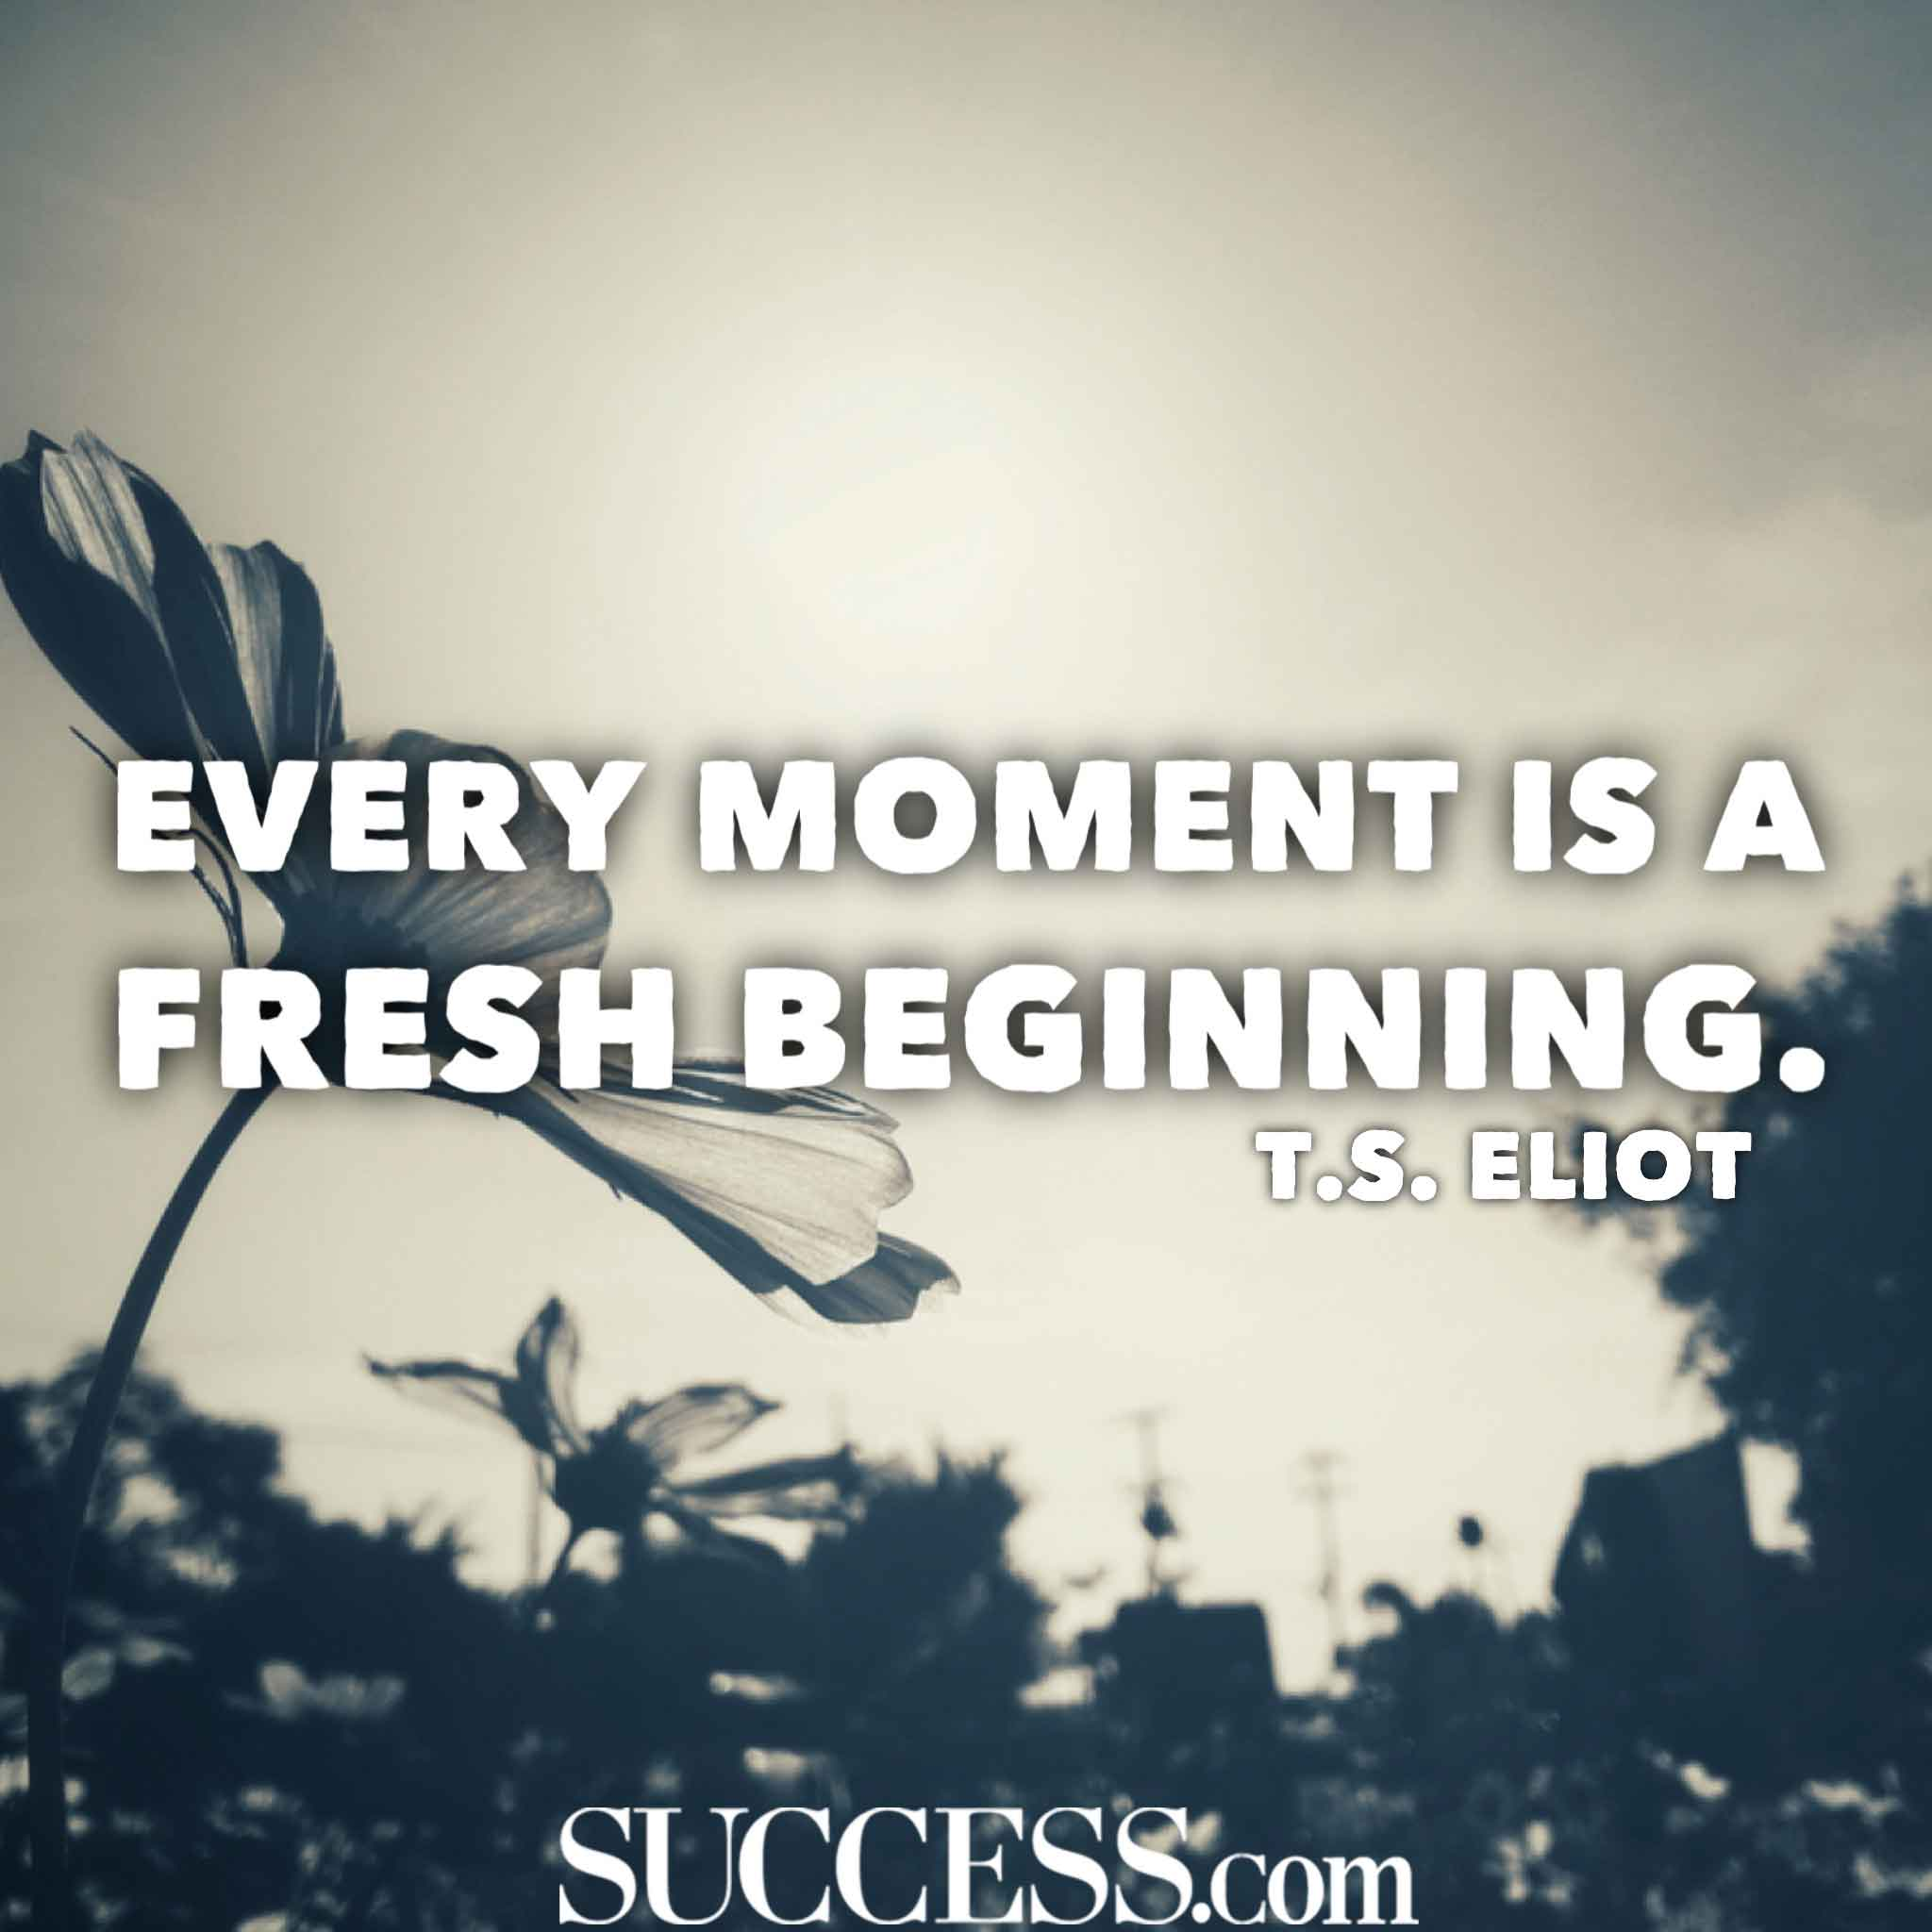 New Start Quotes: 13 Uplifting Quotes About New Beginnings